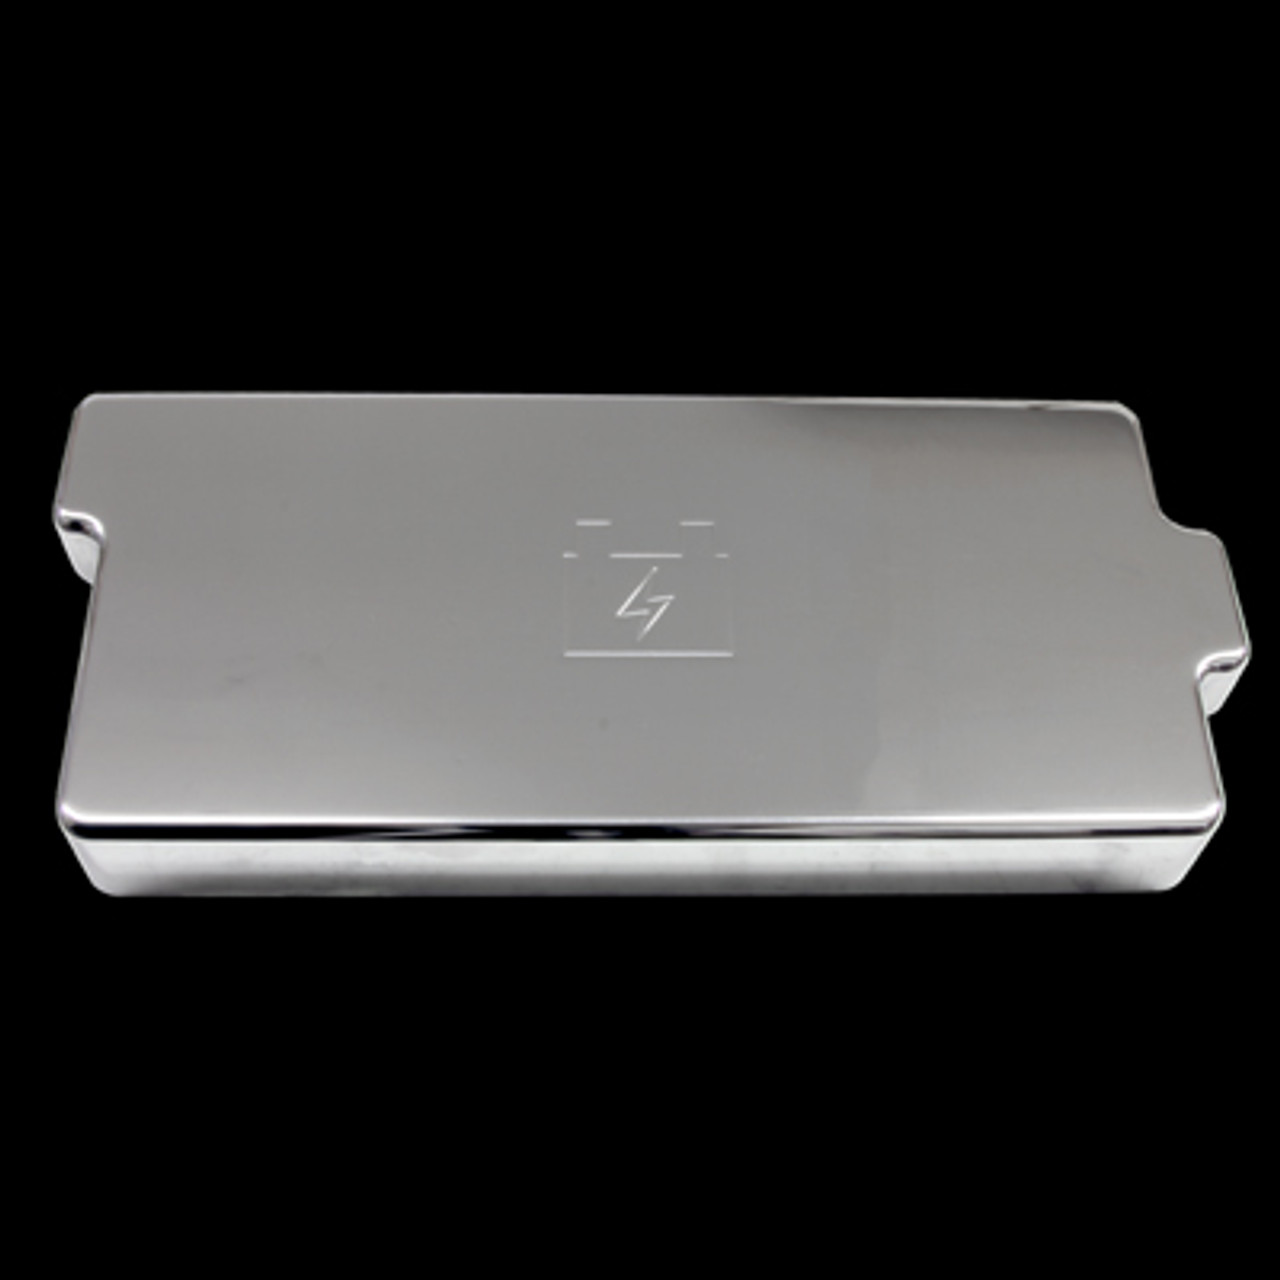 05-09 Ford Mustang GT Shelby GT500 Billet Fuse Box Cover | Mustang Fuse Box Cover |  | UPR Products